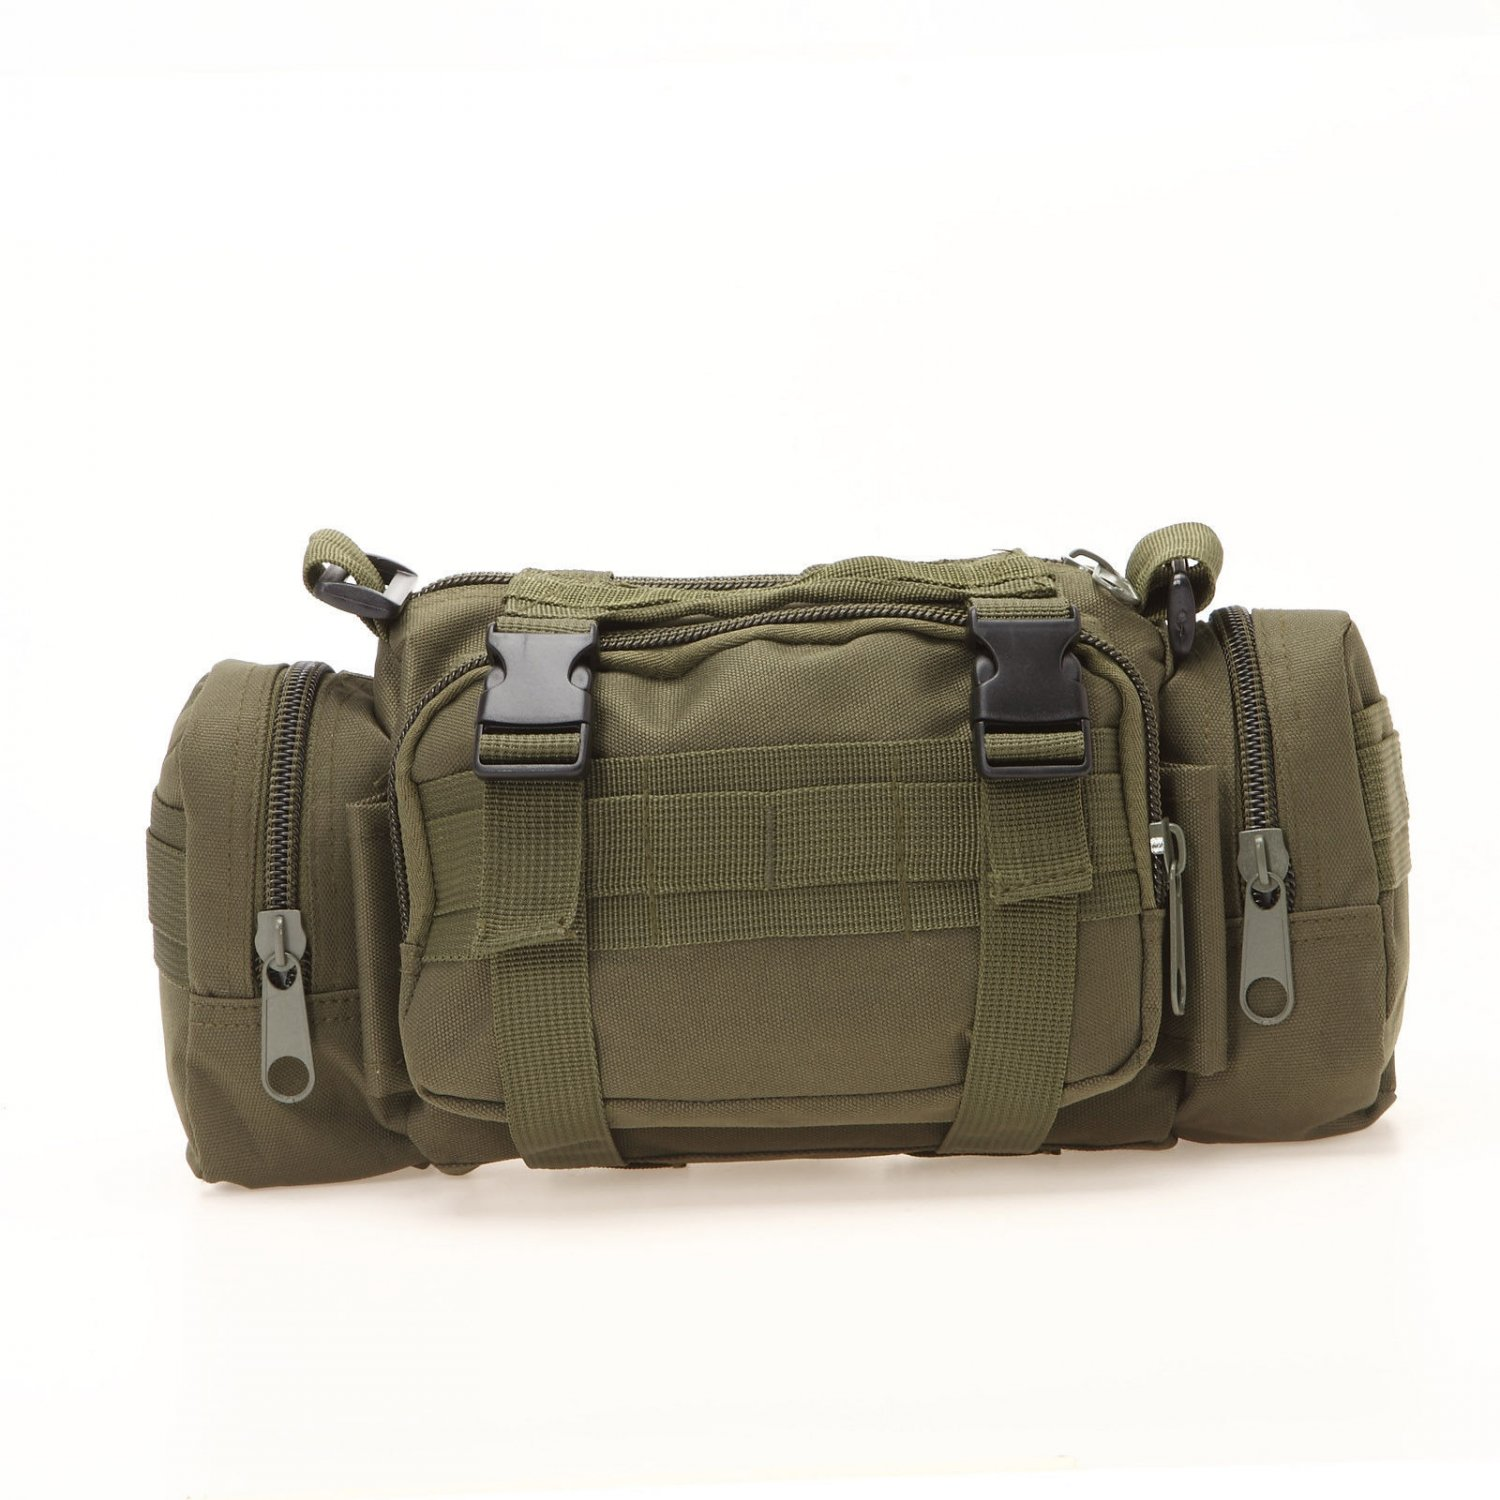 Military Assault Combined Backpack Rucksacks Sport Molle Camping Travel Bag